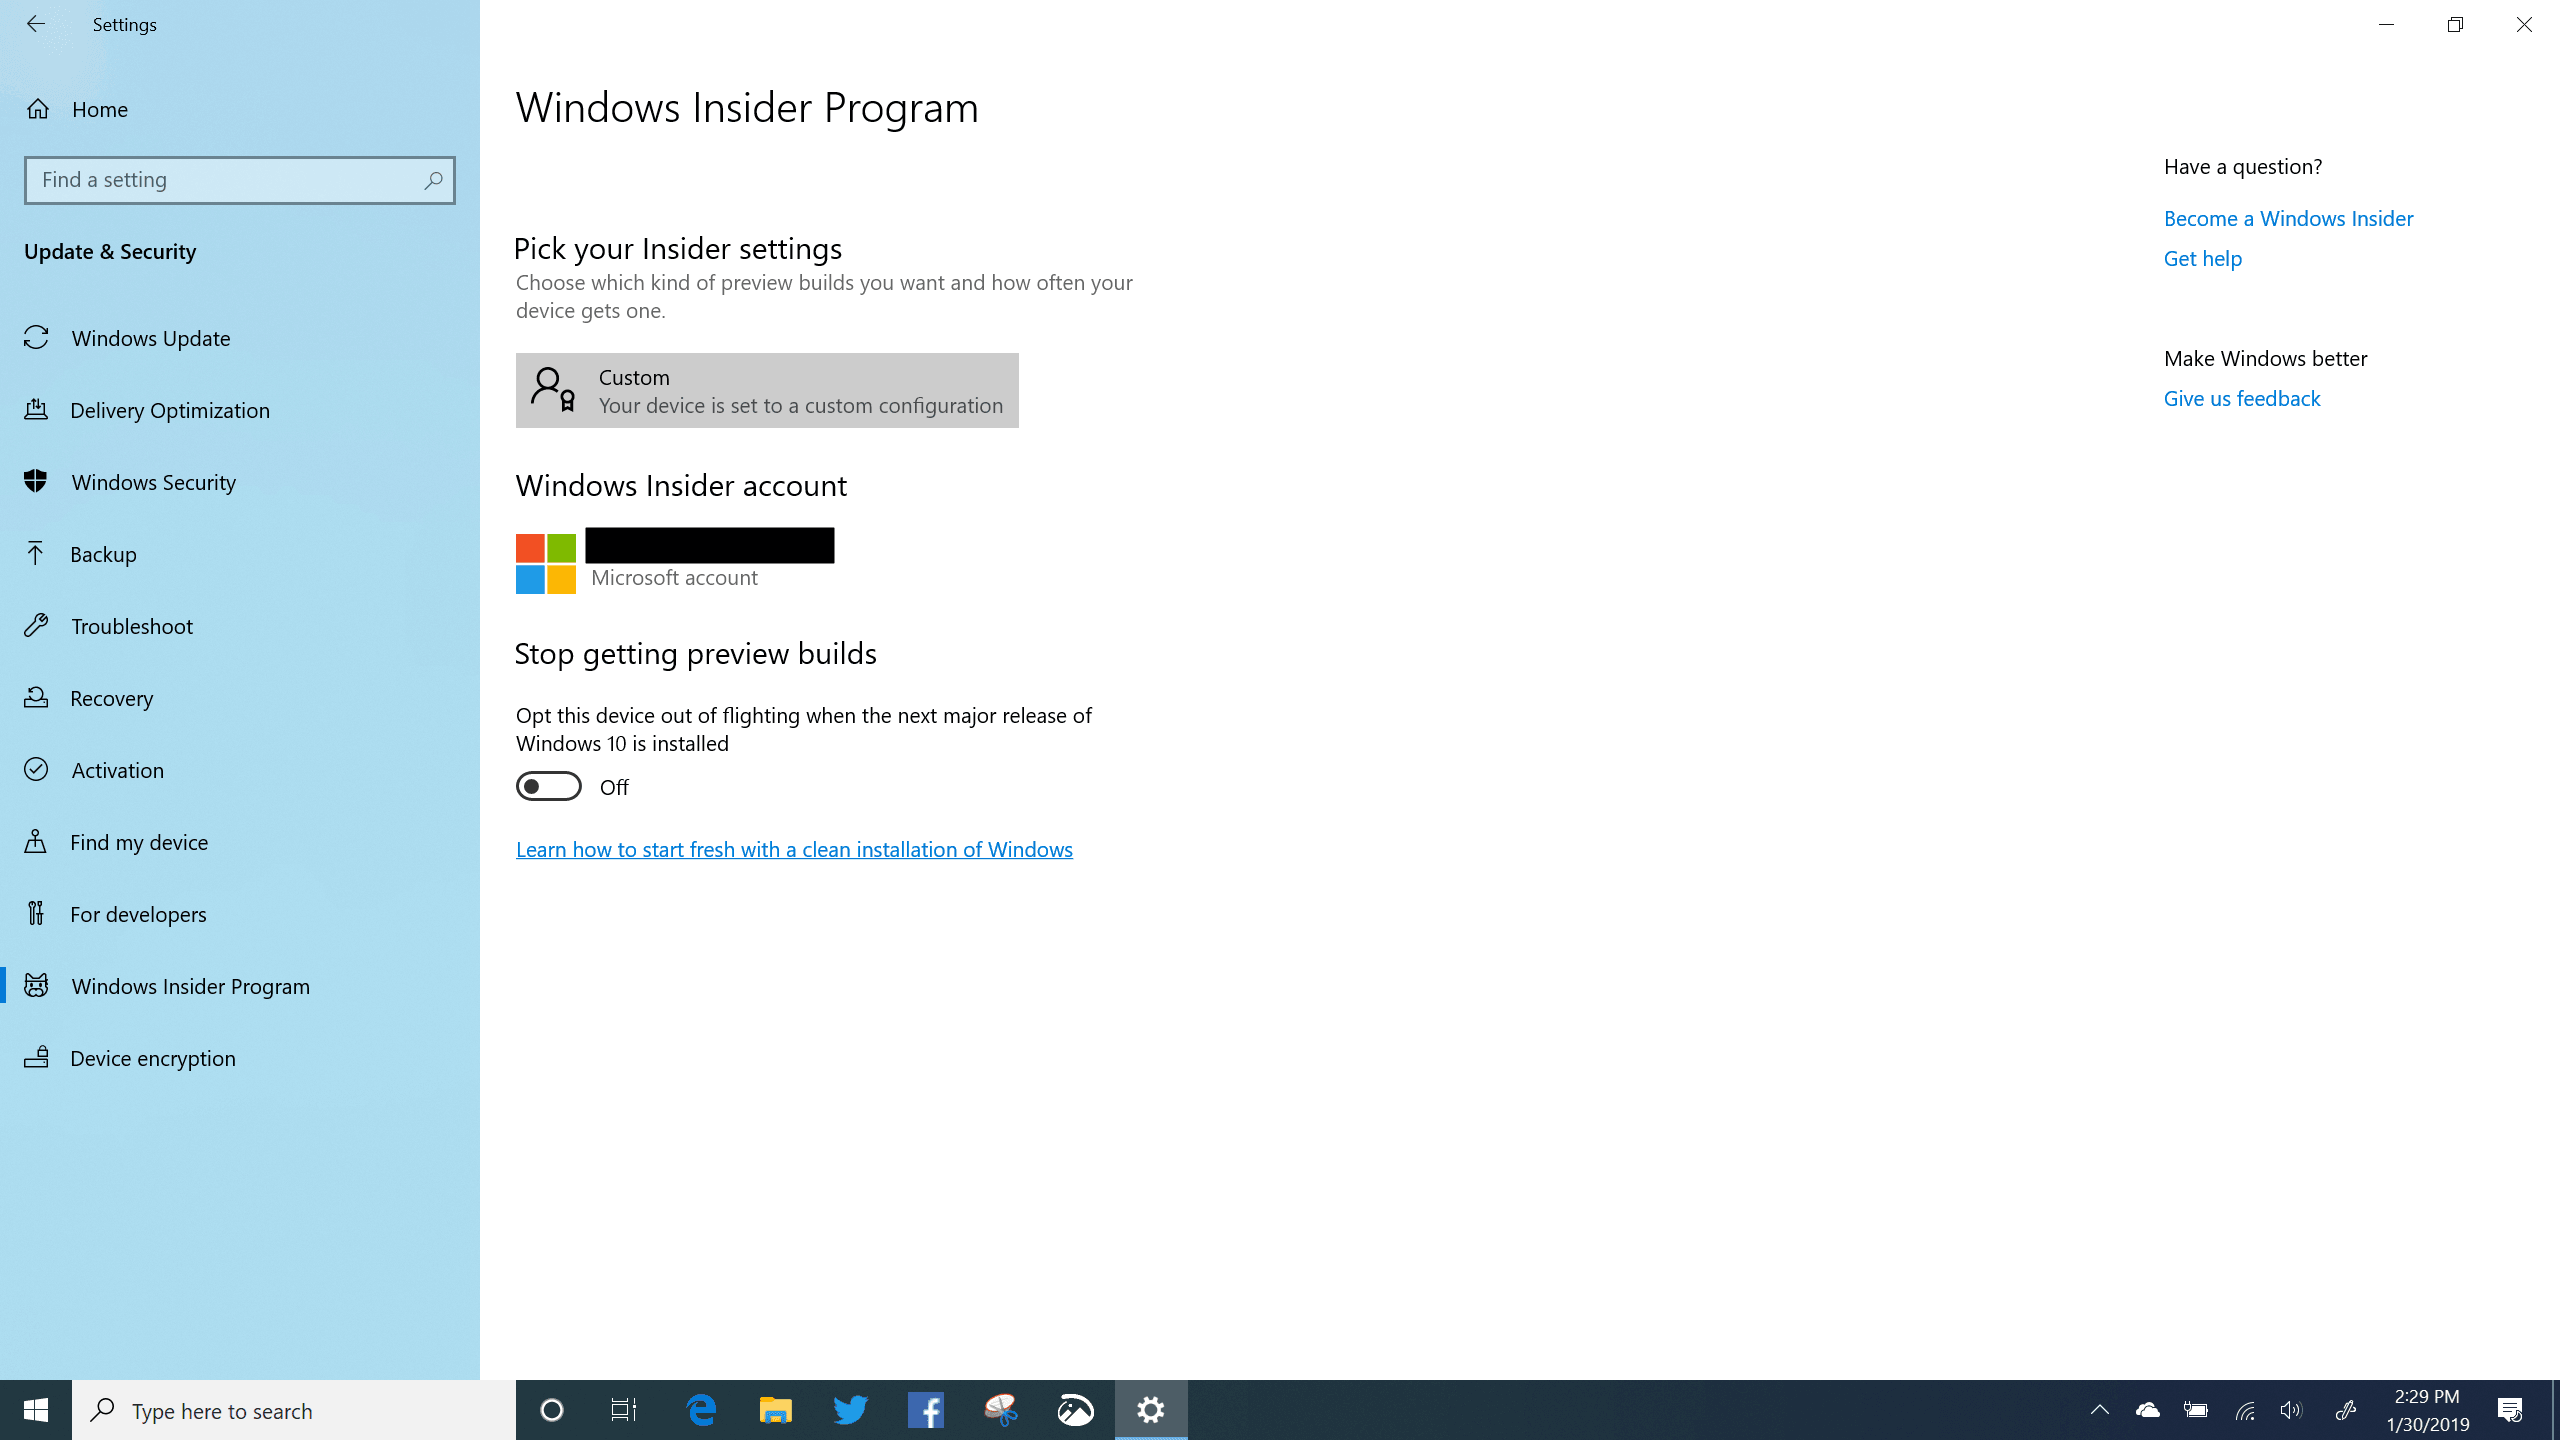 Windows Insider Program Settings on Windows 10 (19H1)